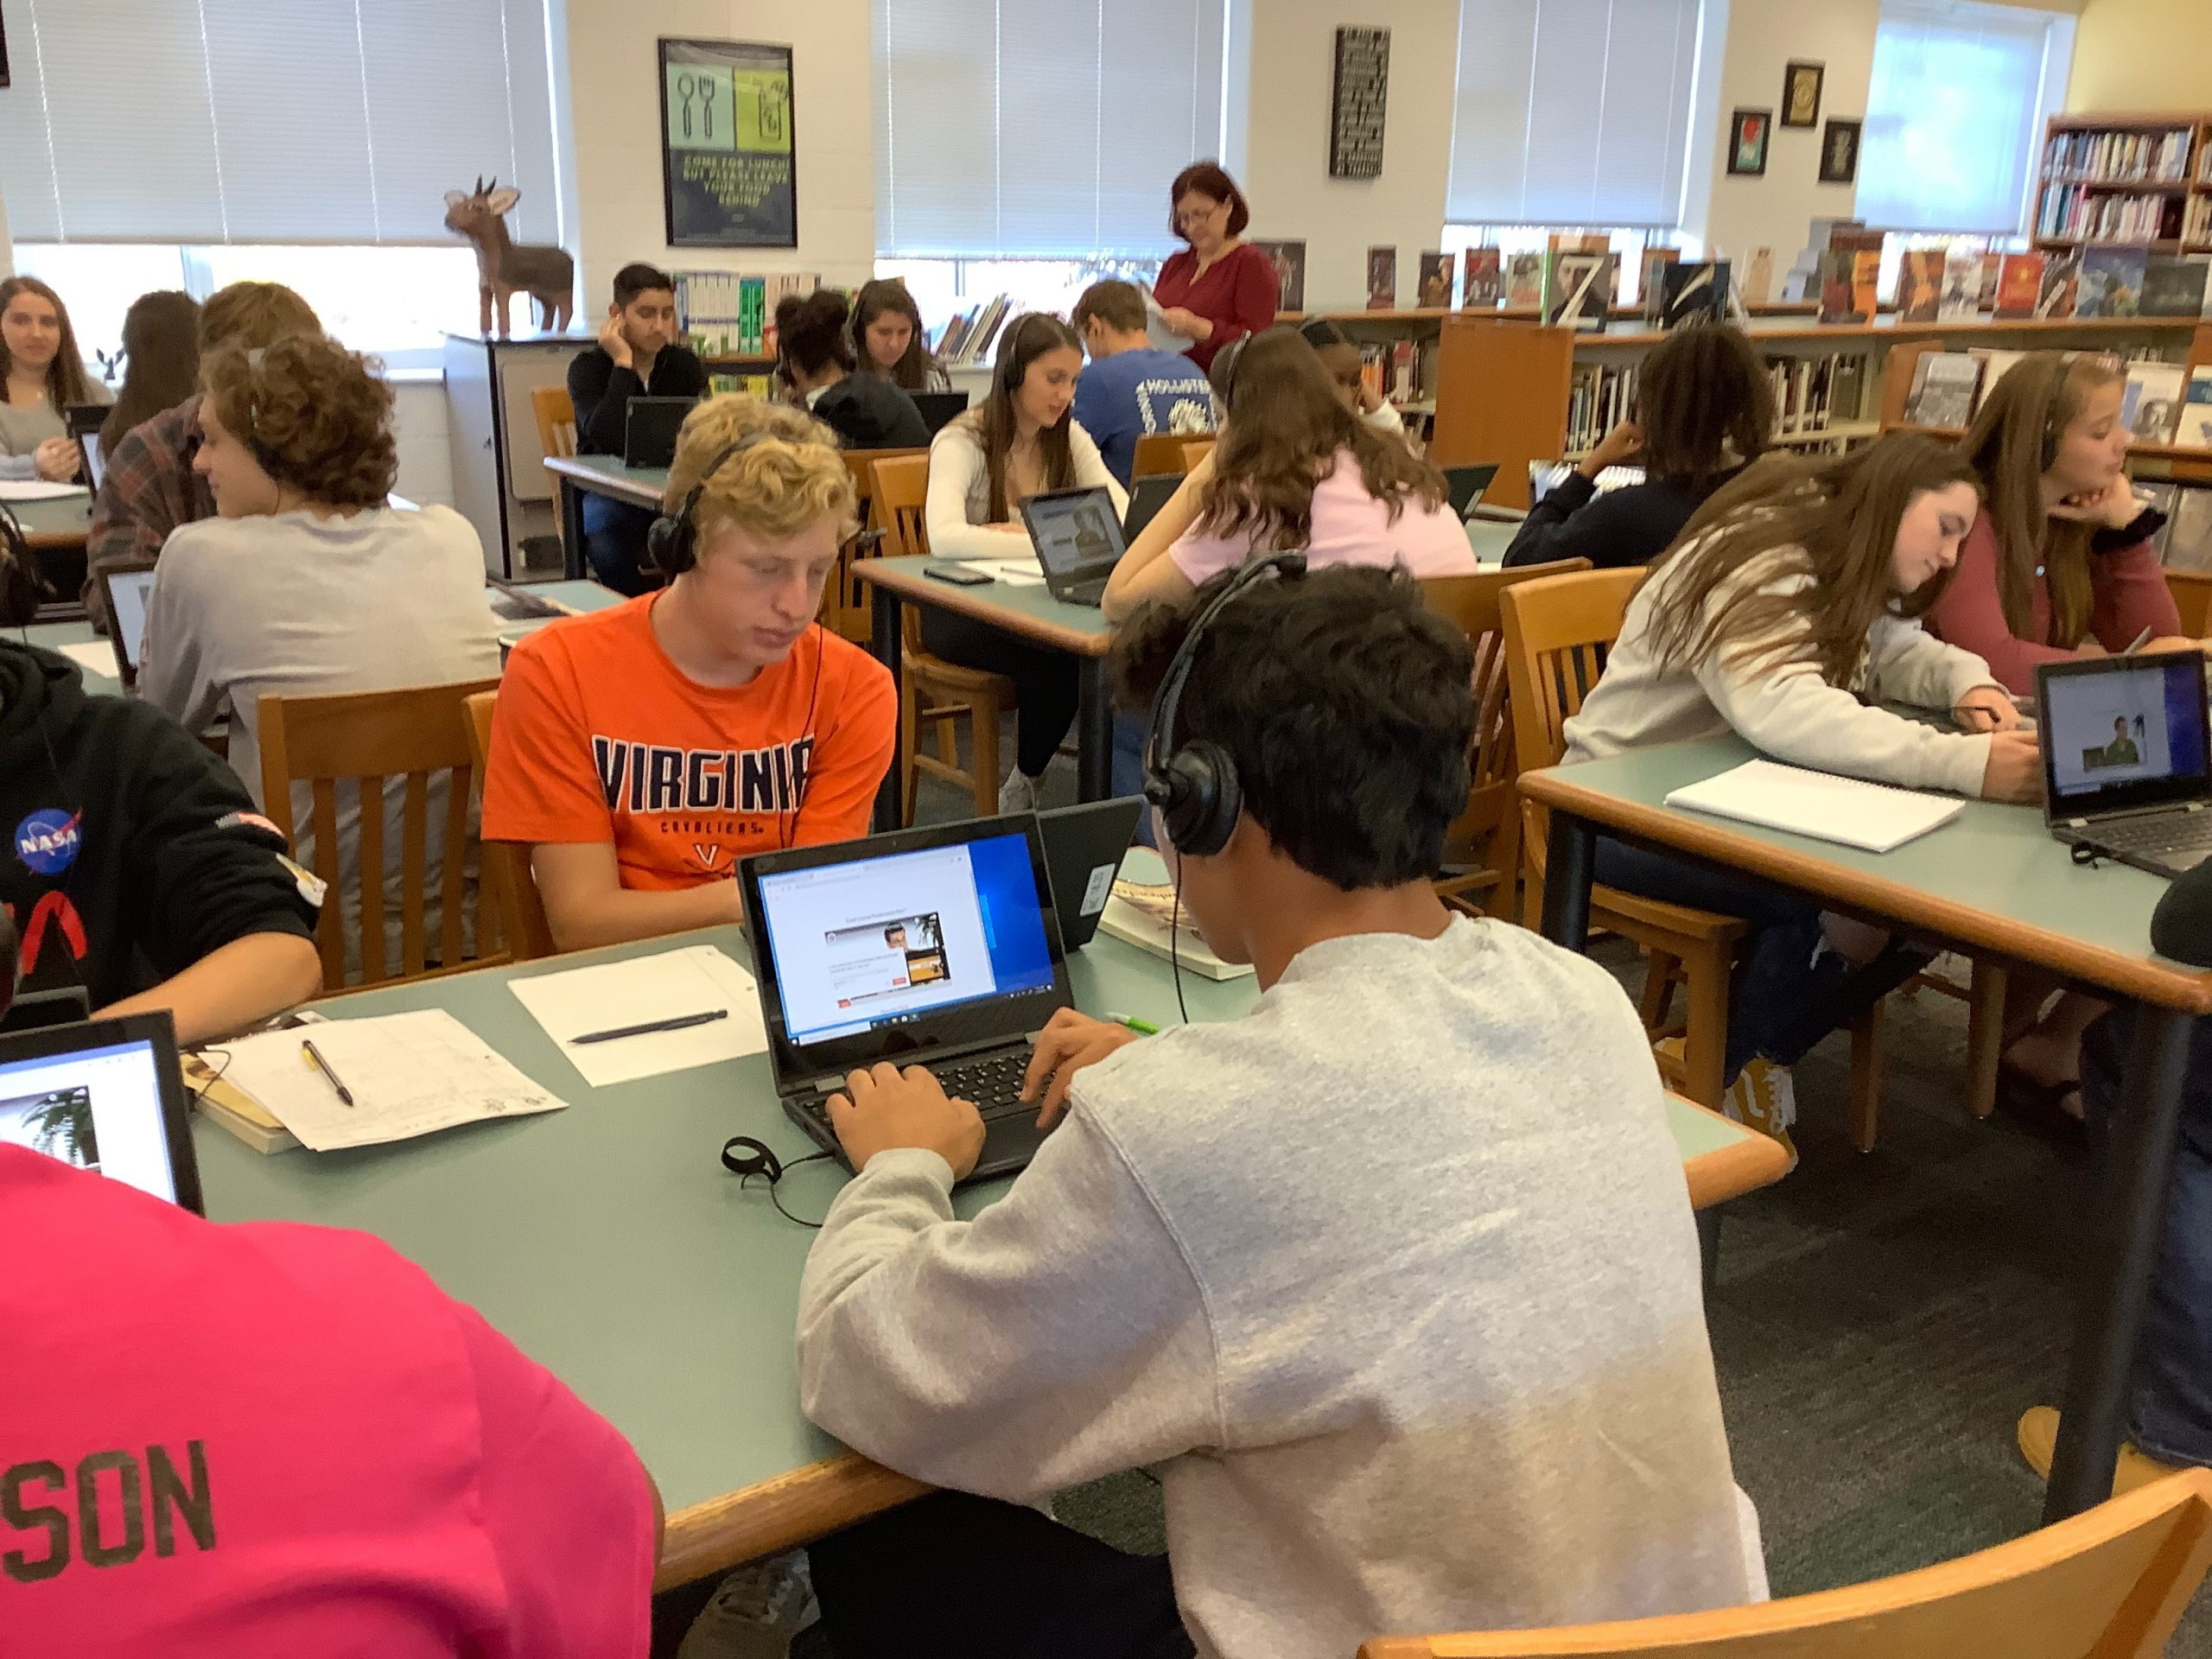 students seated in a library looking at laptops with headphones on